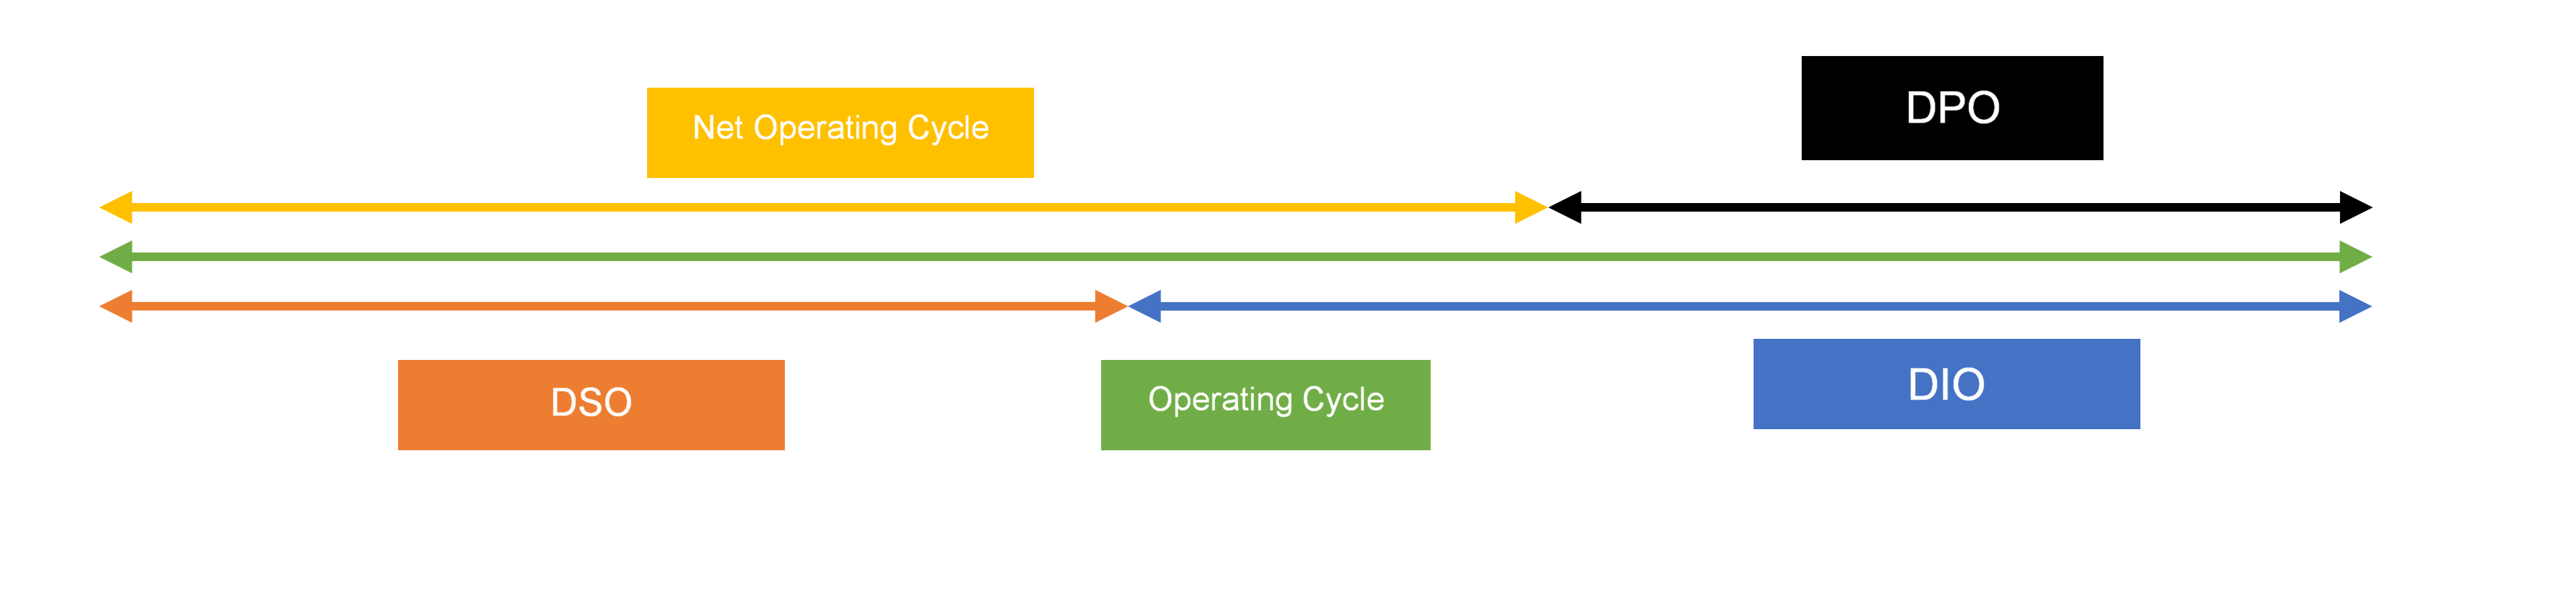 Net Operating Cycle